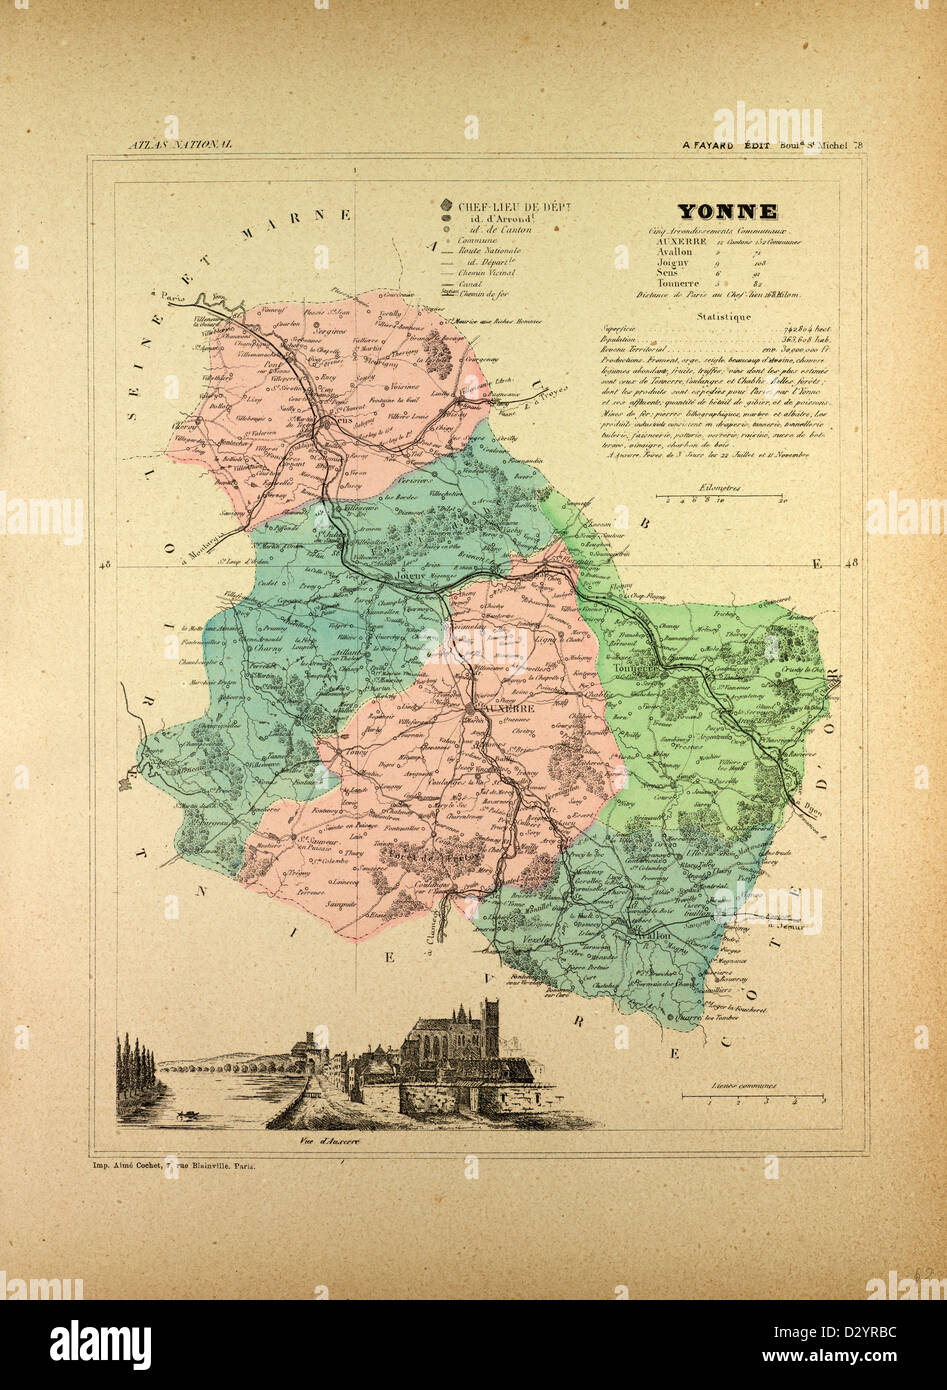 Map Of Yonne France.Map Of Yonne France Stock Photo 53471472 Alamy